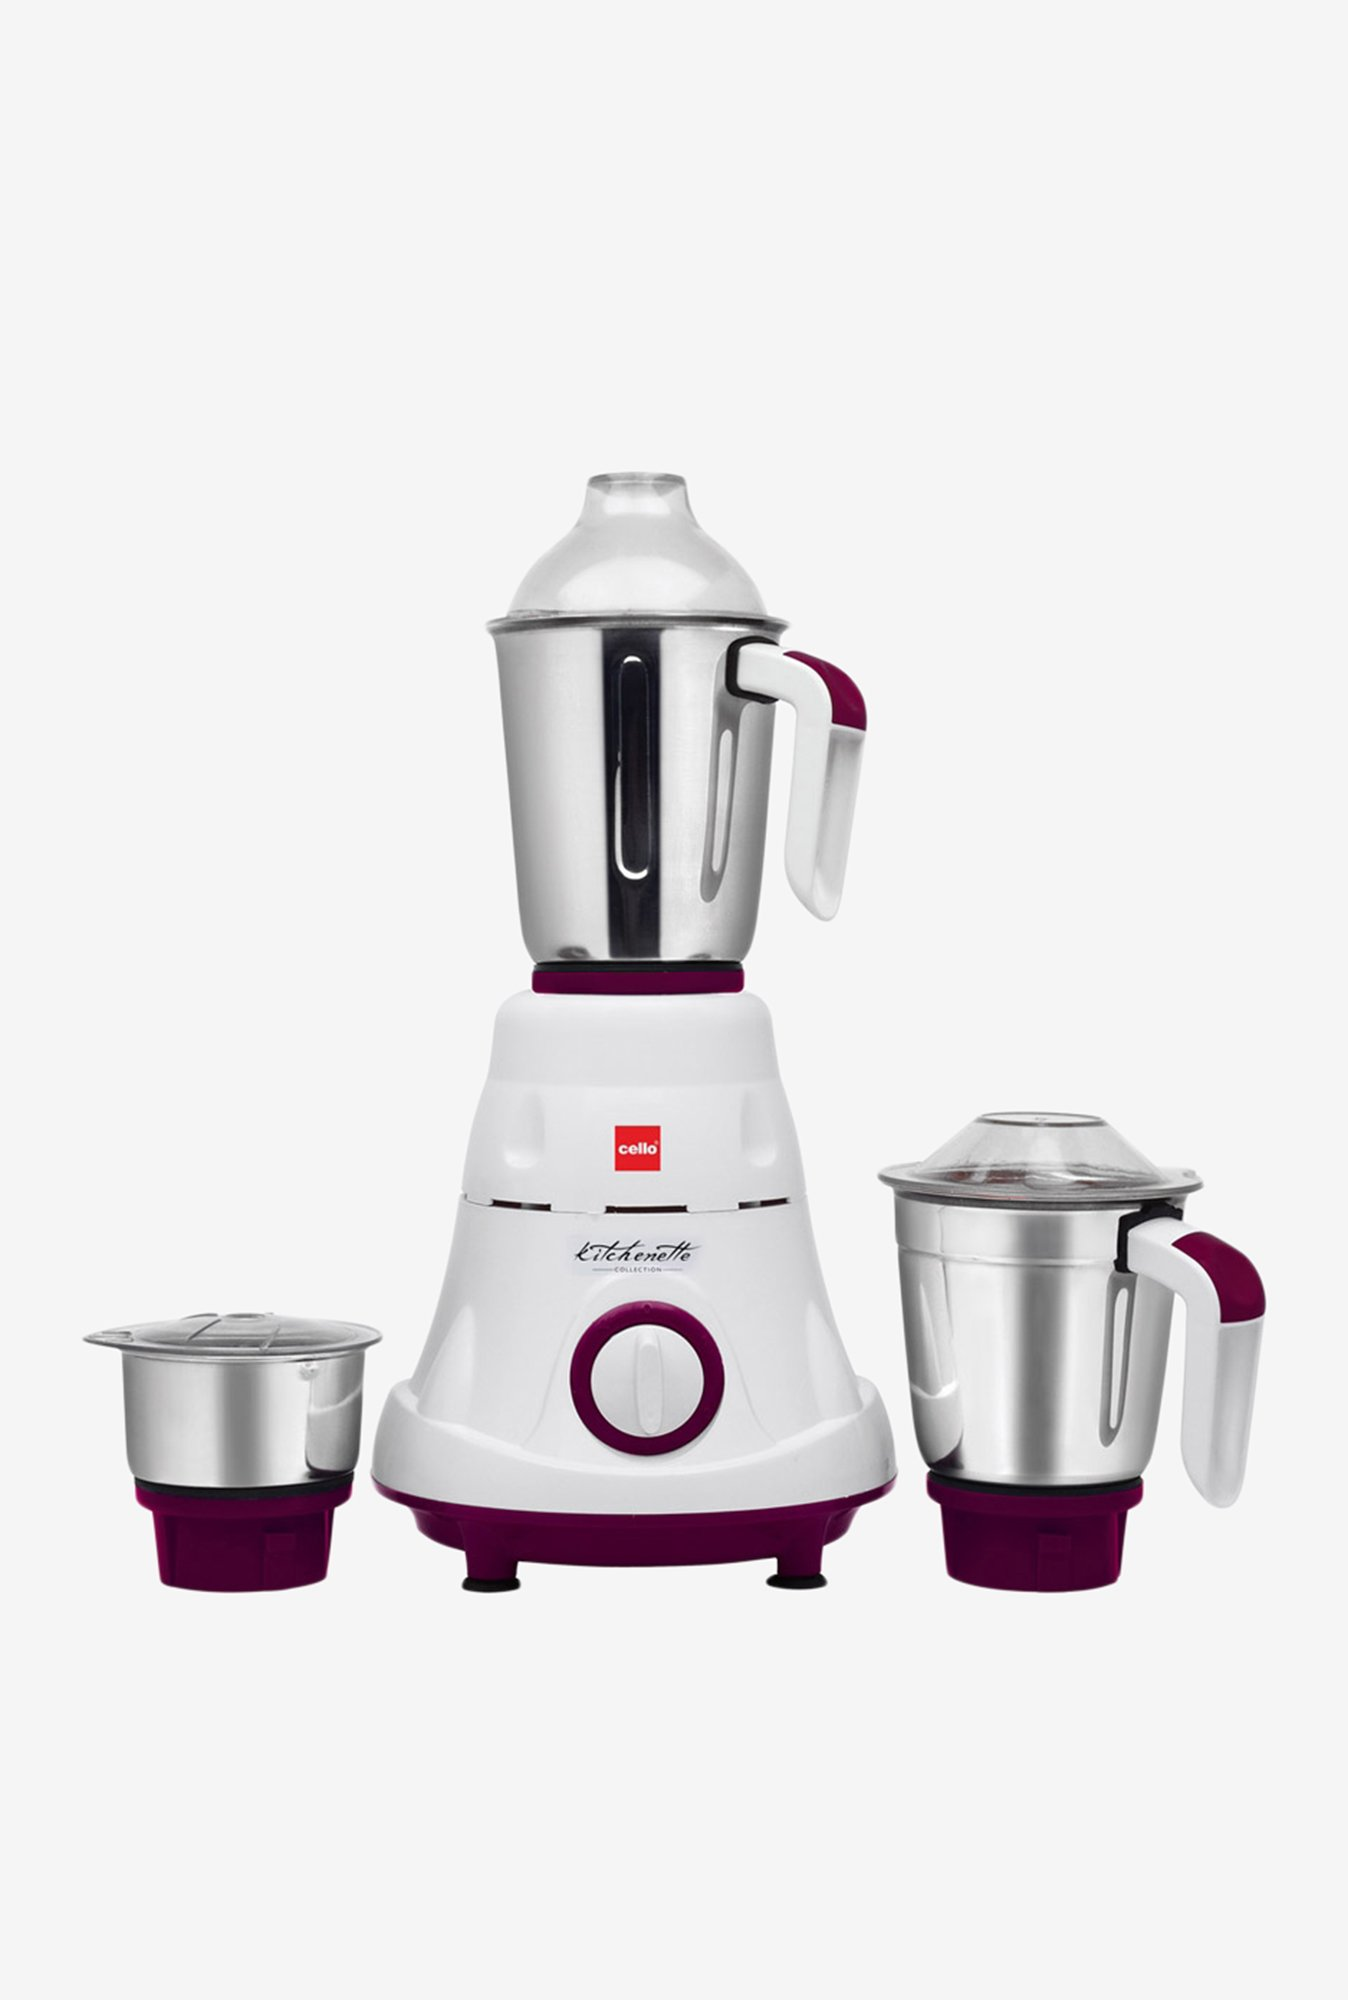 Cello 500W Grind-N-Mix 900 Mixer Grinder Purple & White